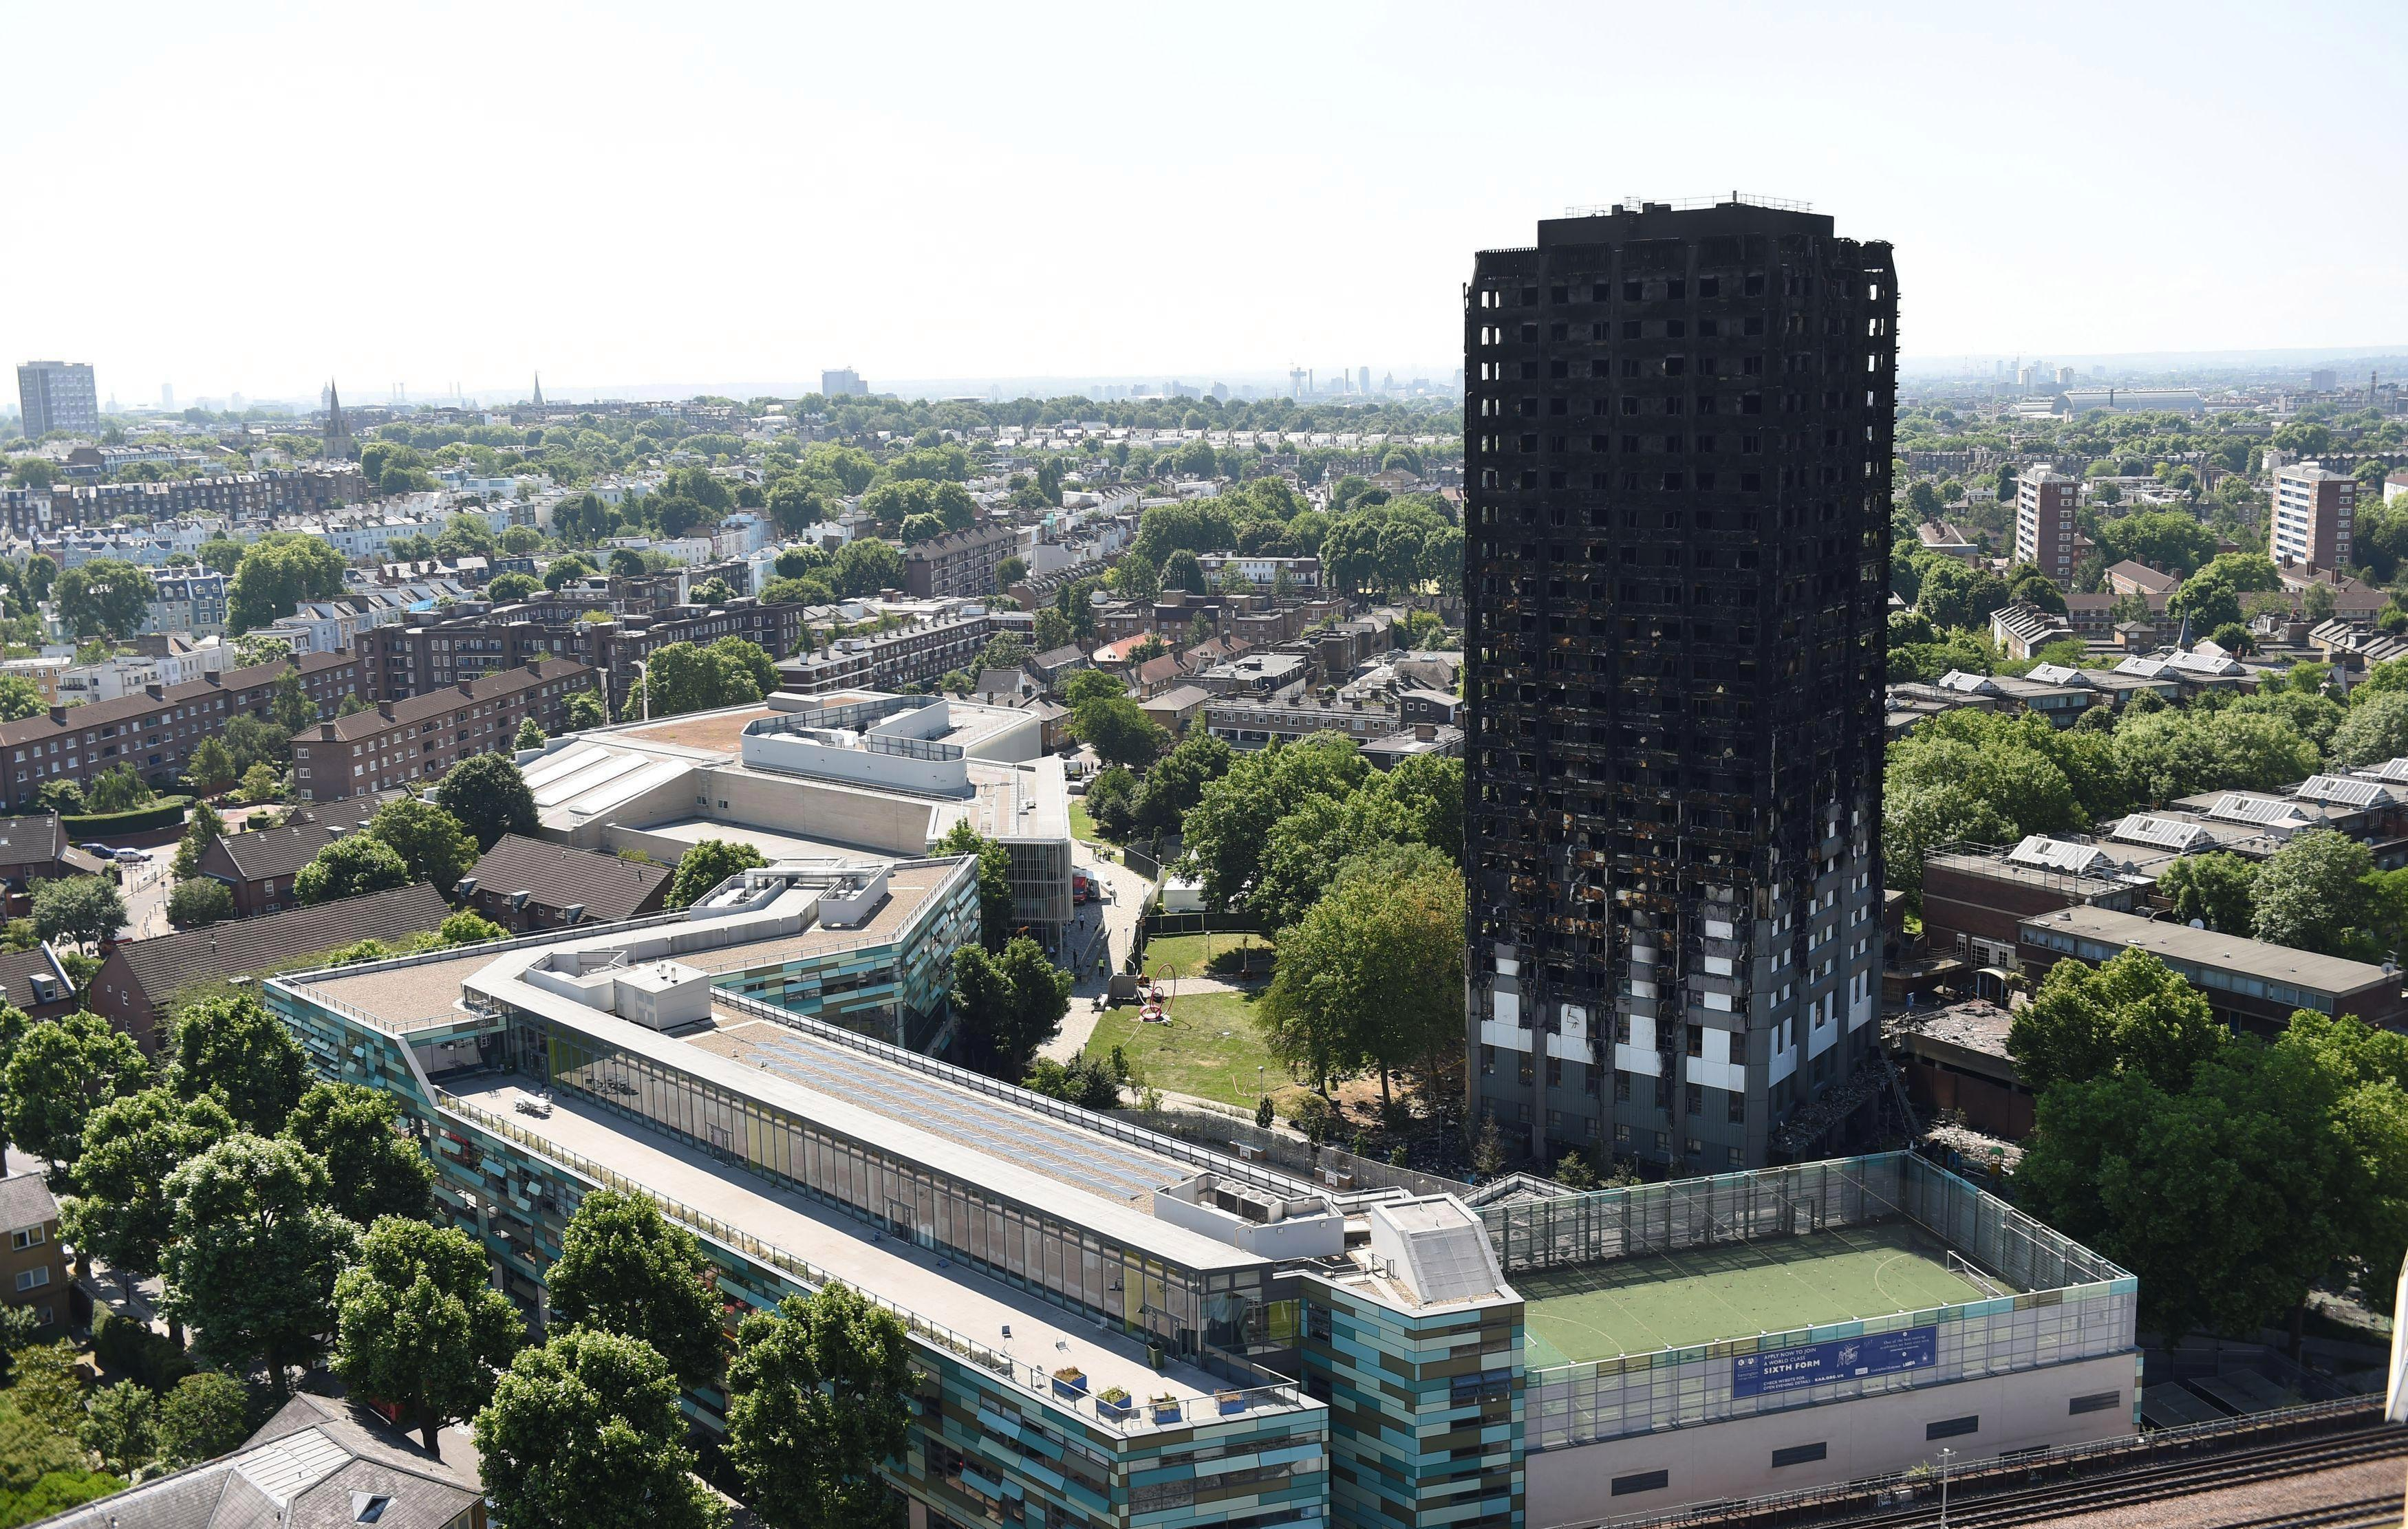 £1million Grenfell fraud investigation underway after 15 people claimed they lived in ONE flat